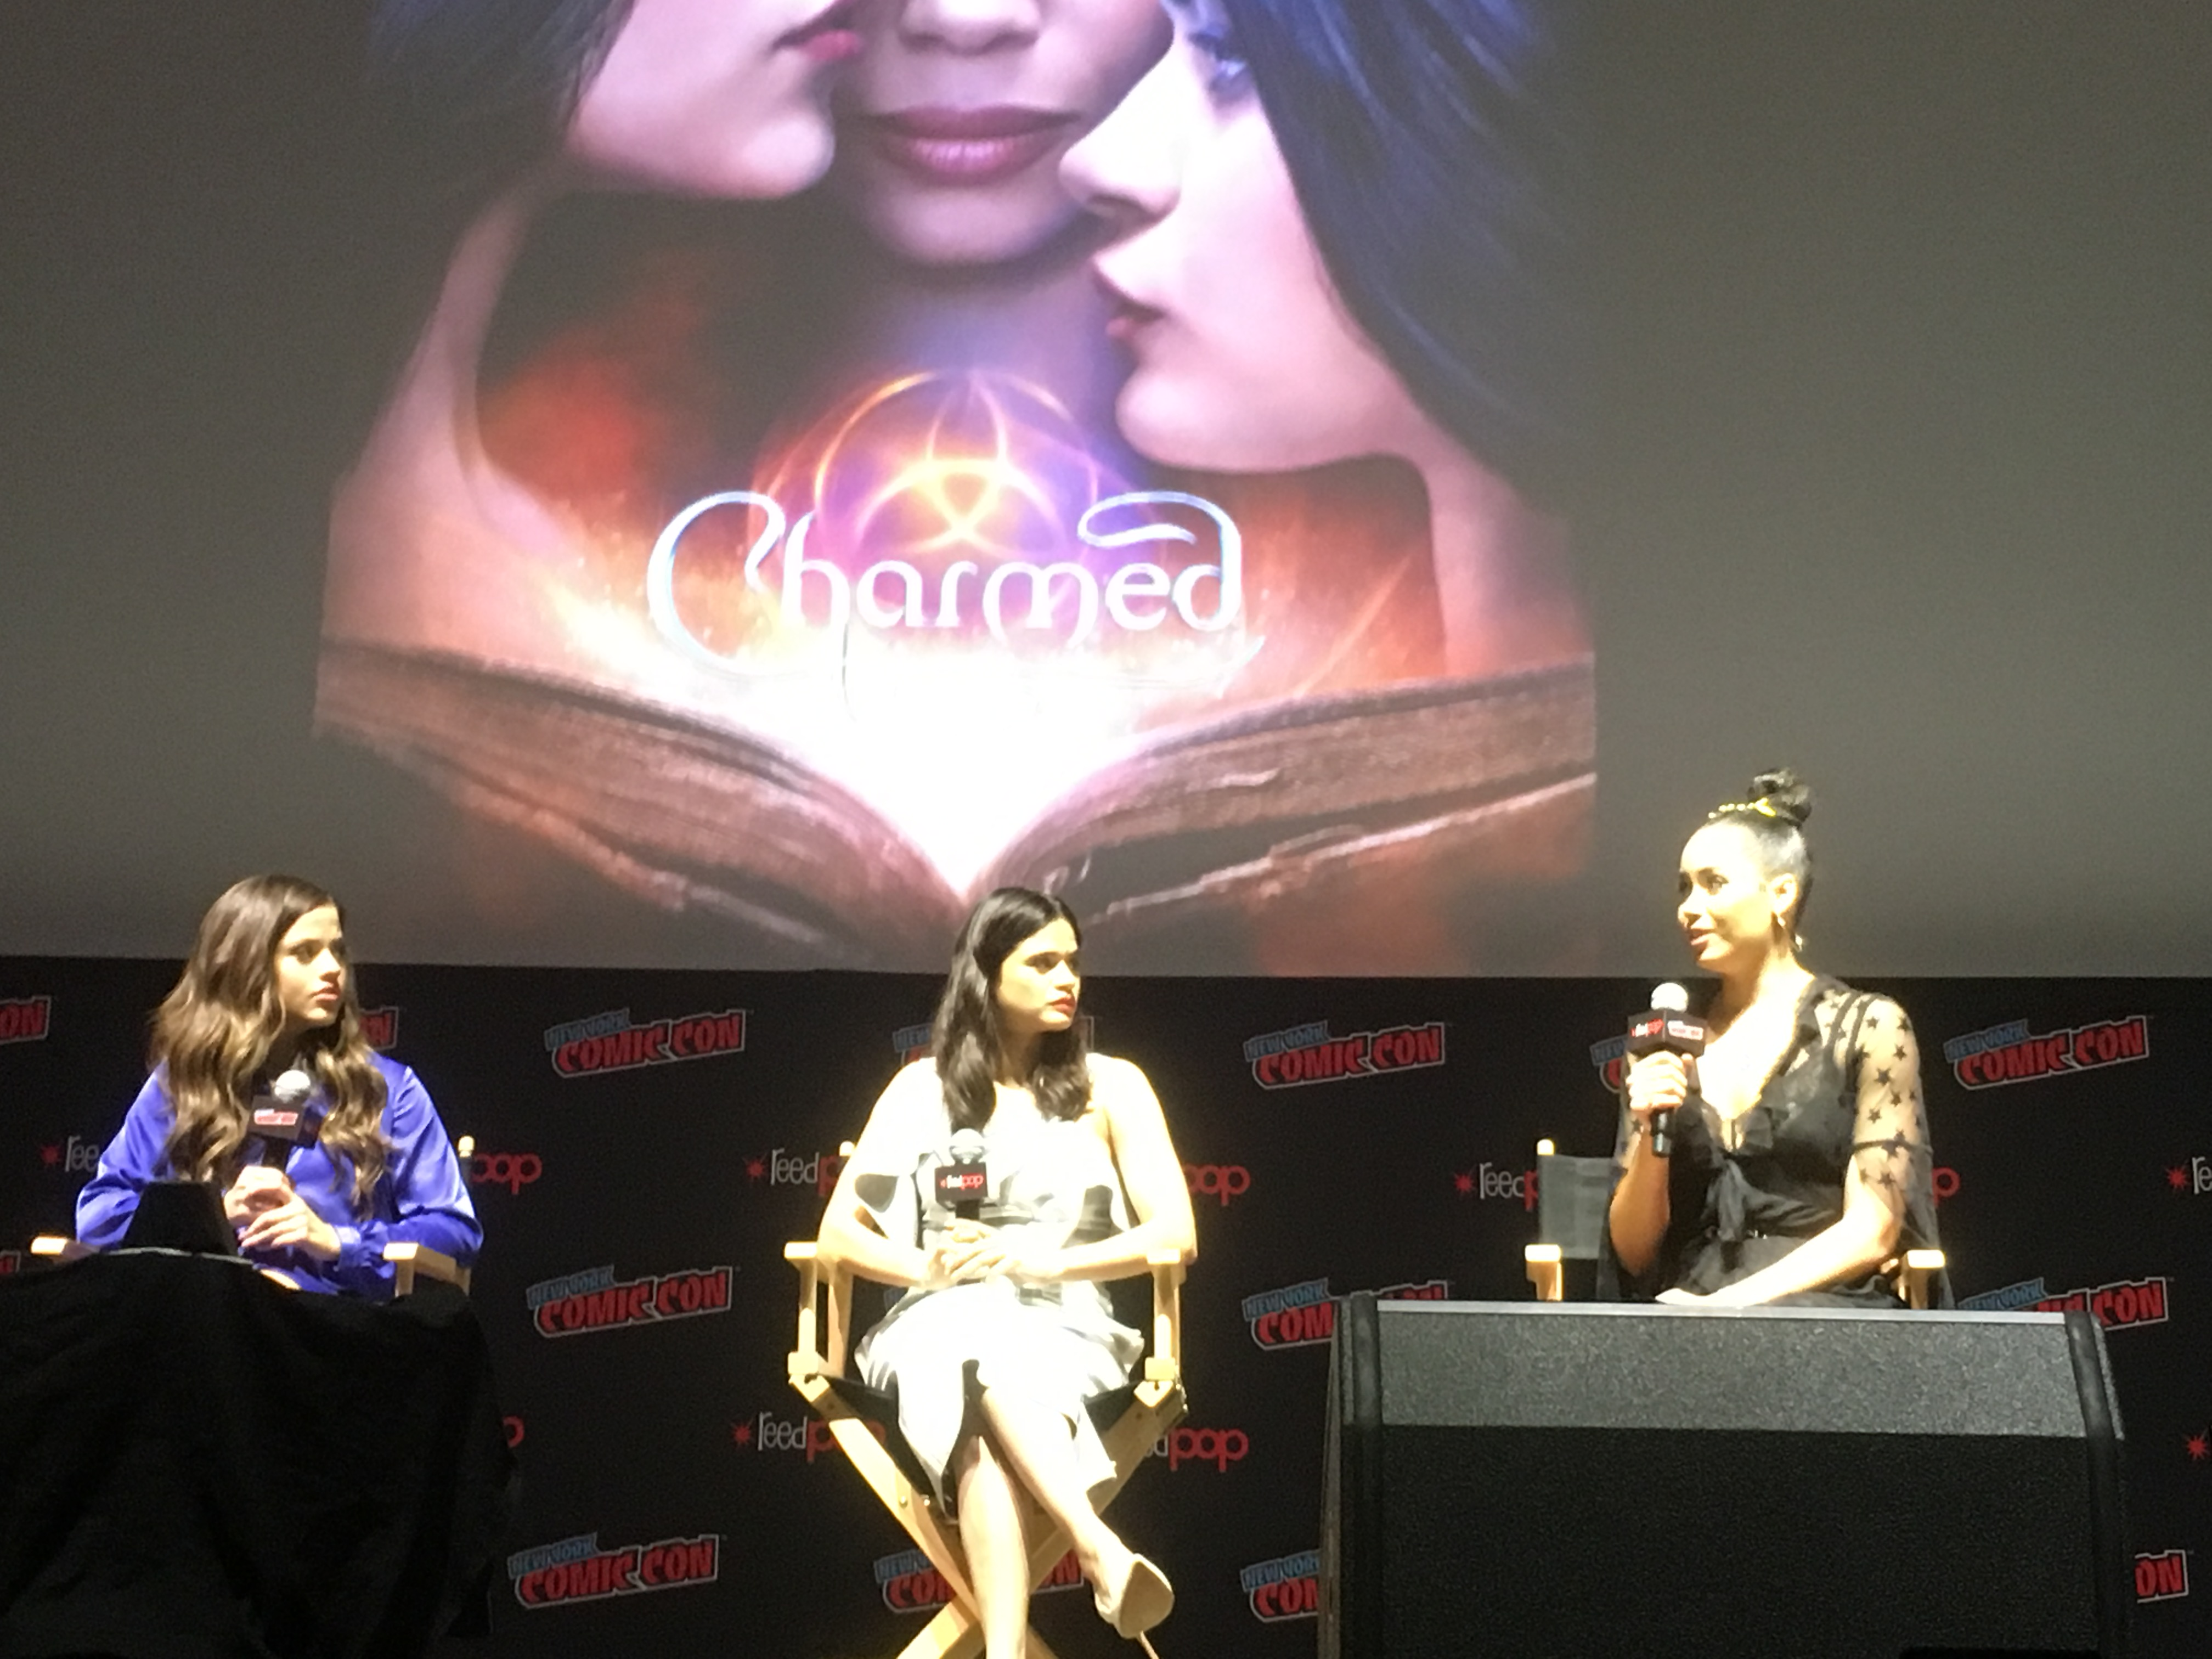 The rebooted 'Charmed' pilot debuted at NYCC. Does it recapture the magic?